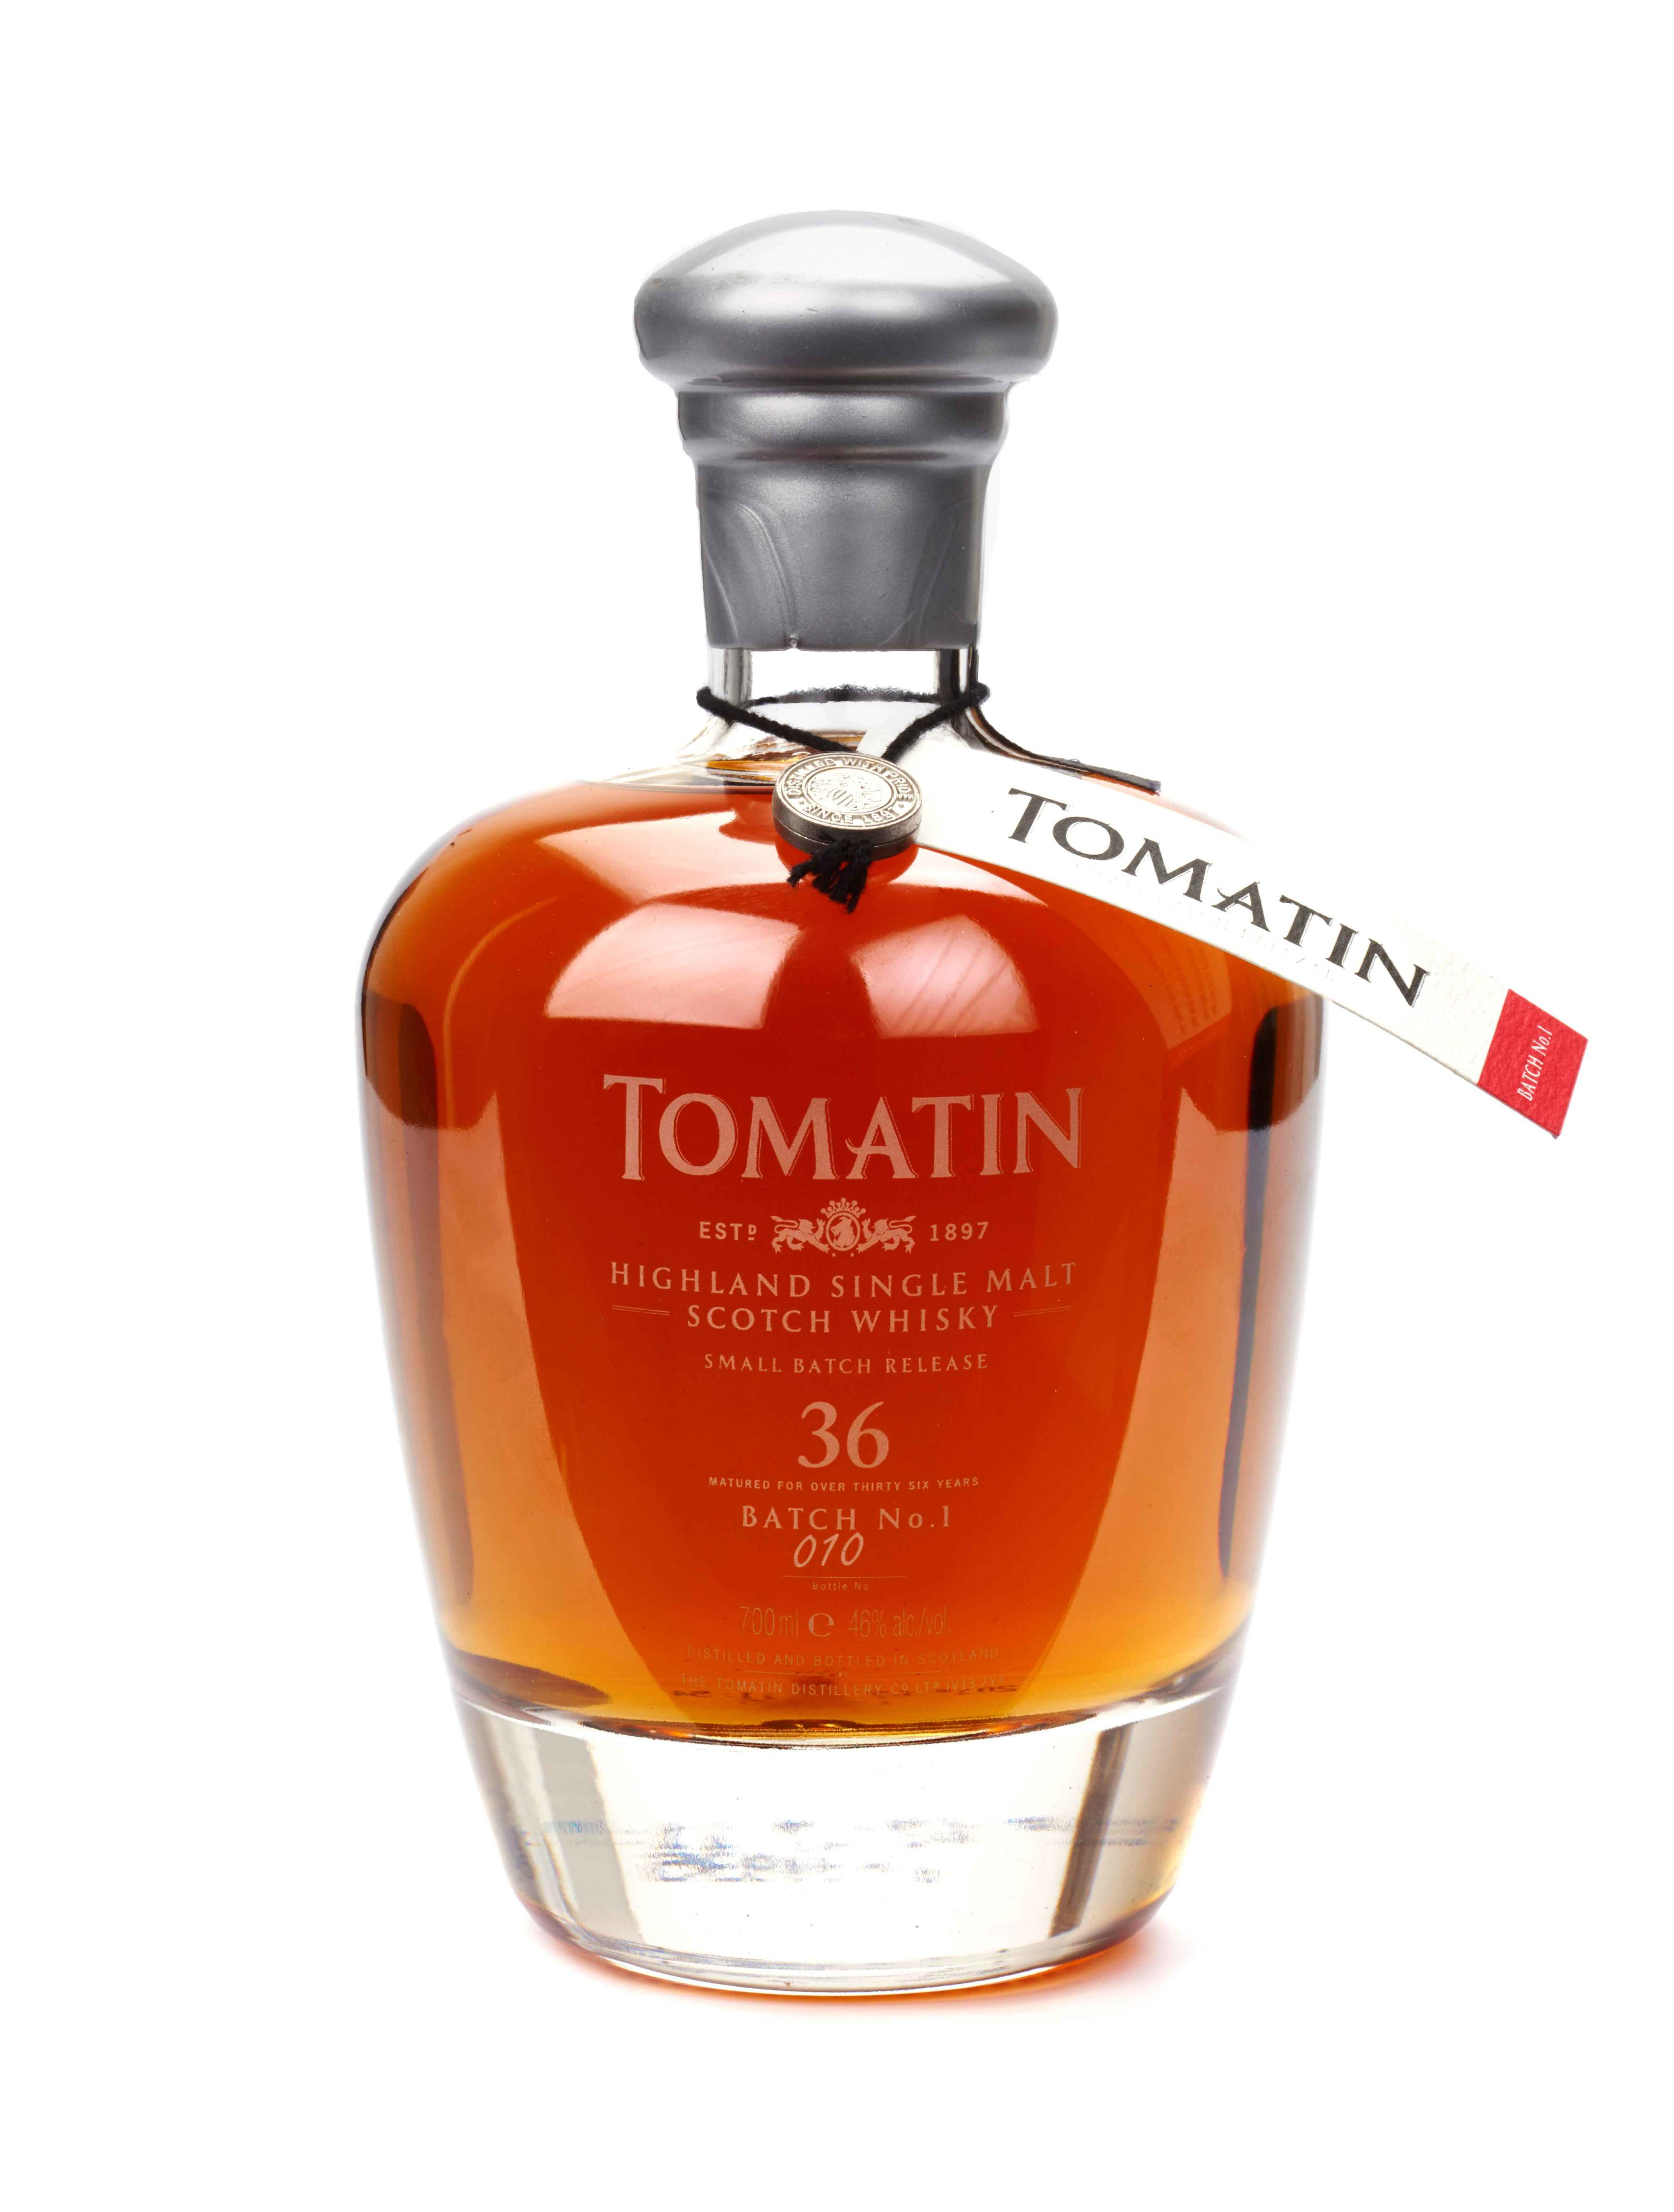 Tomatin 36 Year Old Batch 1